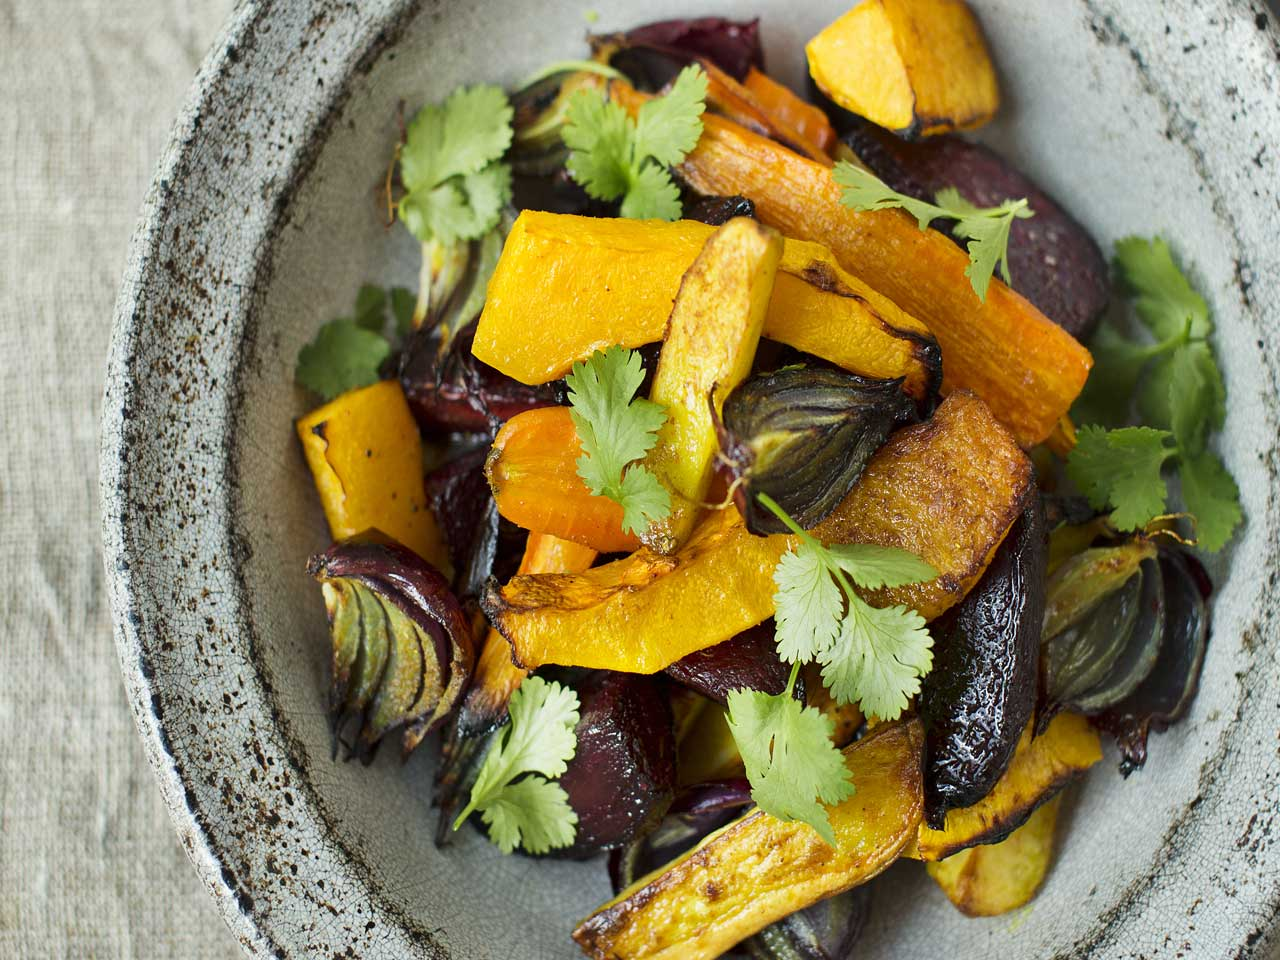 Roast vegetables with Indian spices